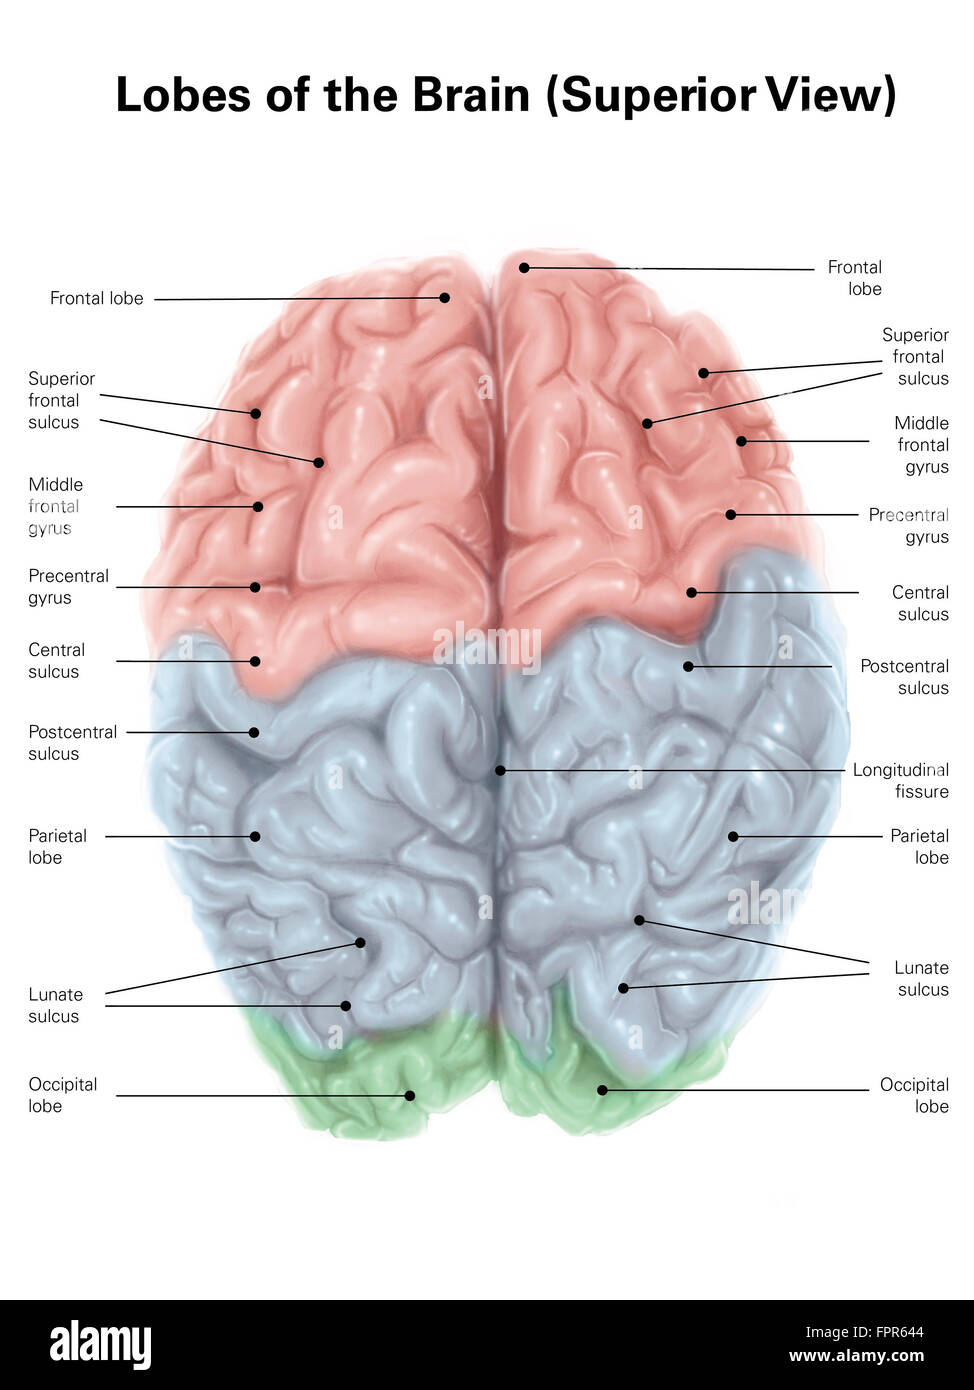 frontal brain diagram no labels 2004 honda odyssey radio wiring superior view of human with colored lobes and stock photo, royalty free image ...